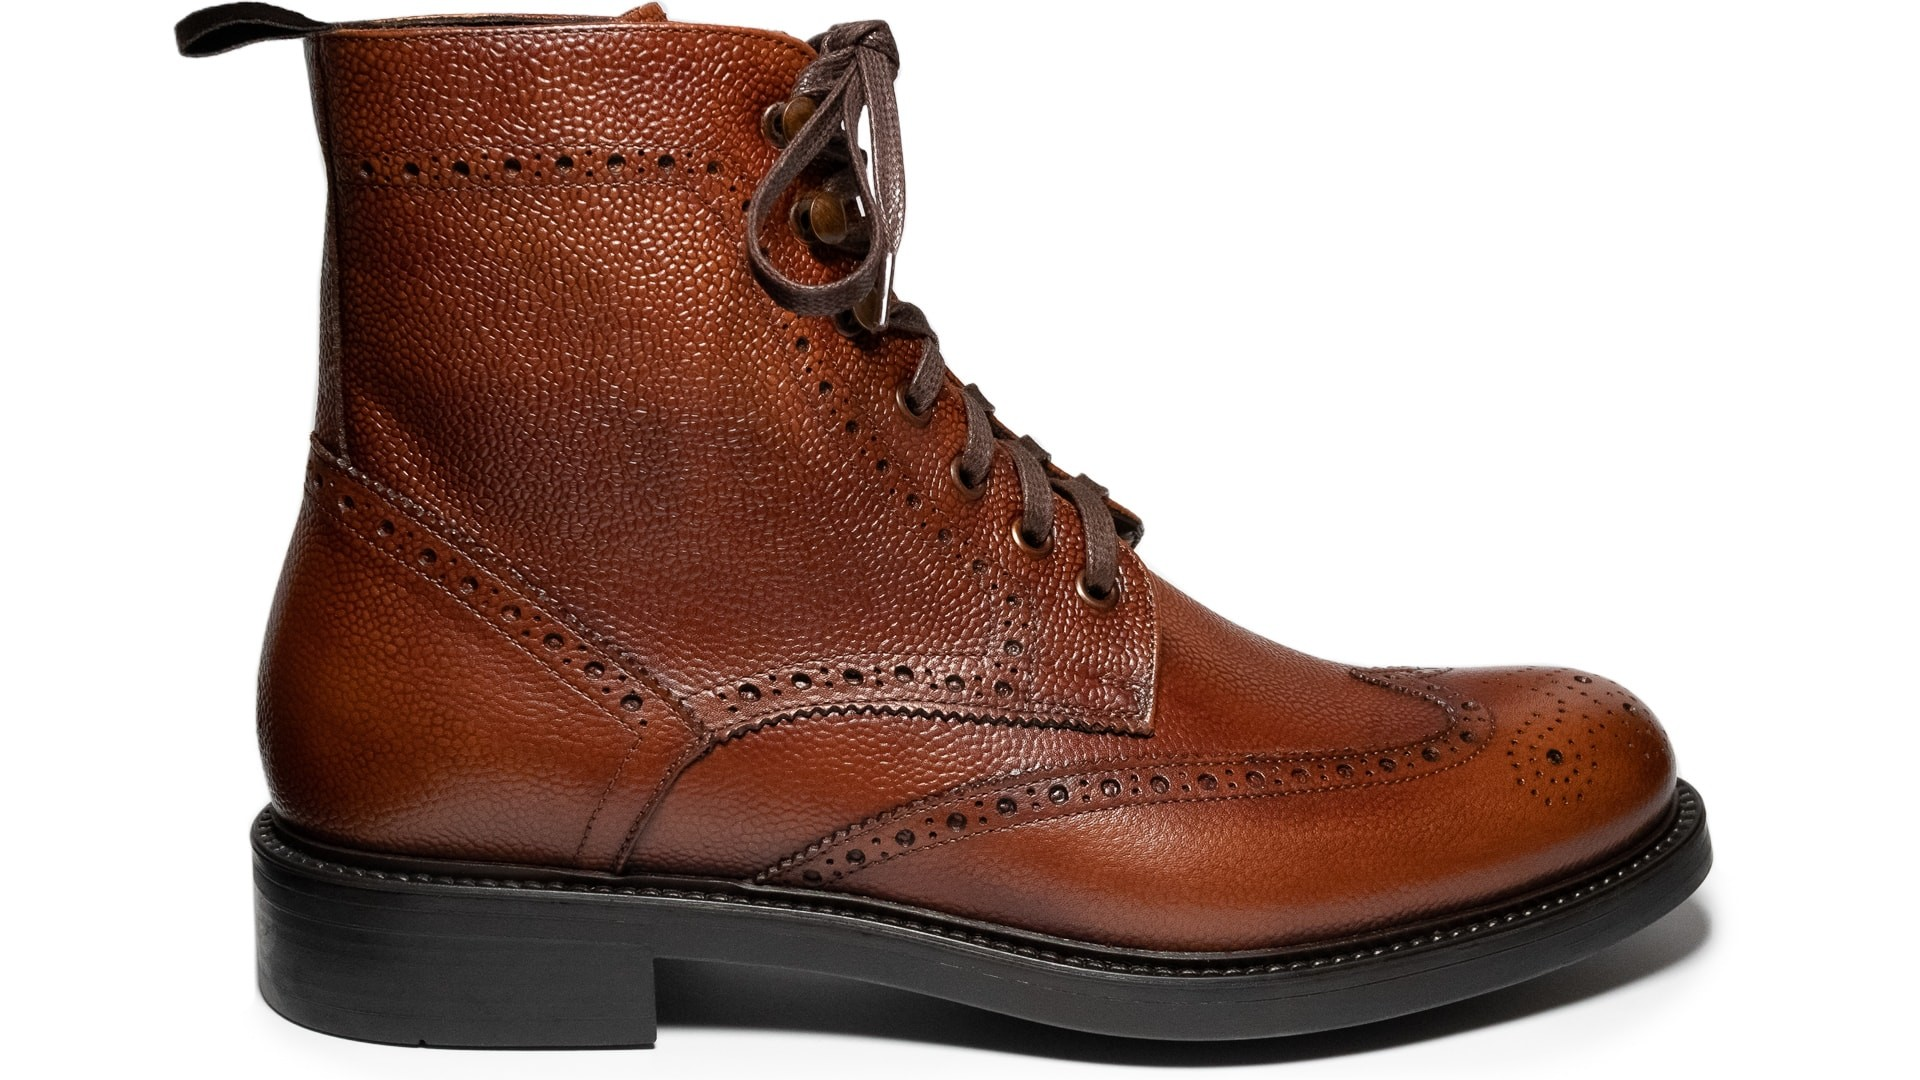 Brogue Boots Scotch Grain Cognac